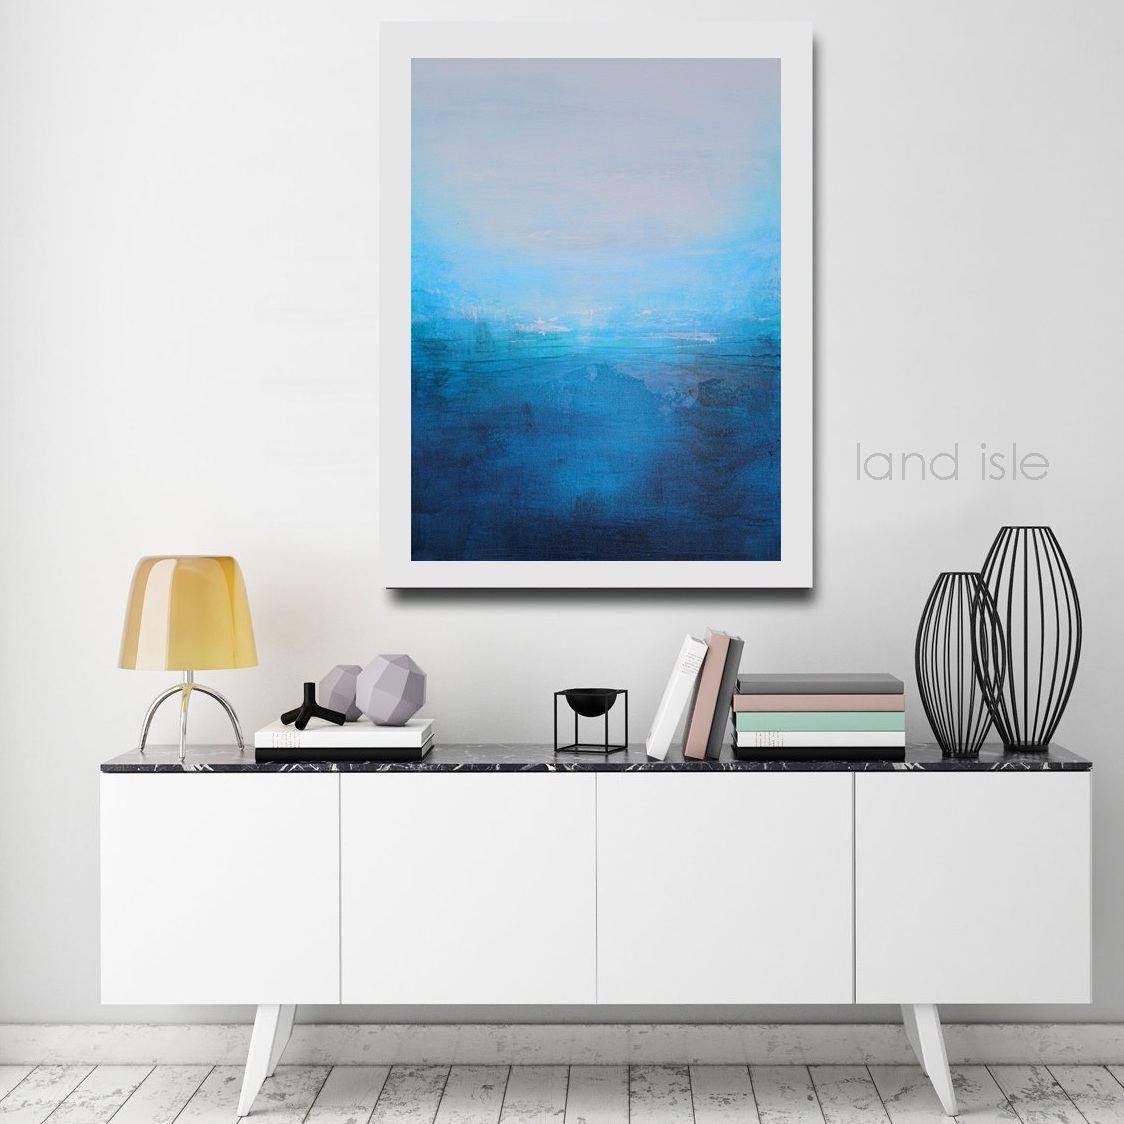 There is no missing this artwork when hung over a white credenza!